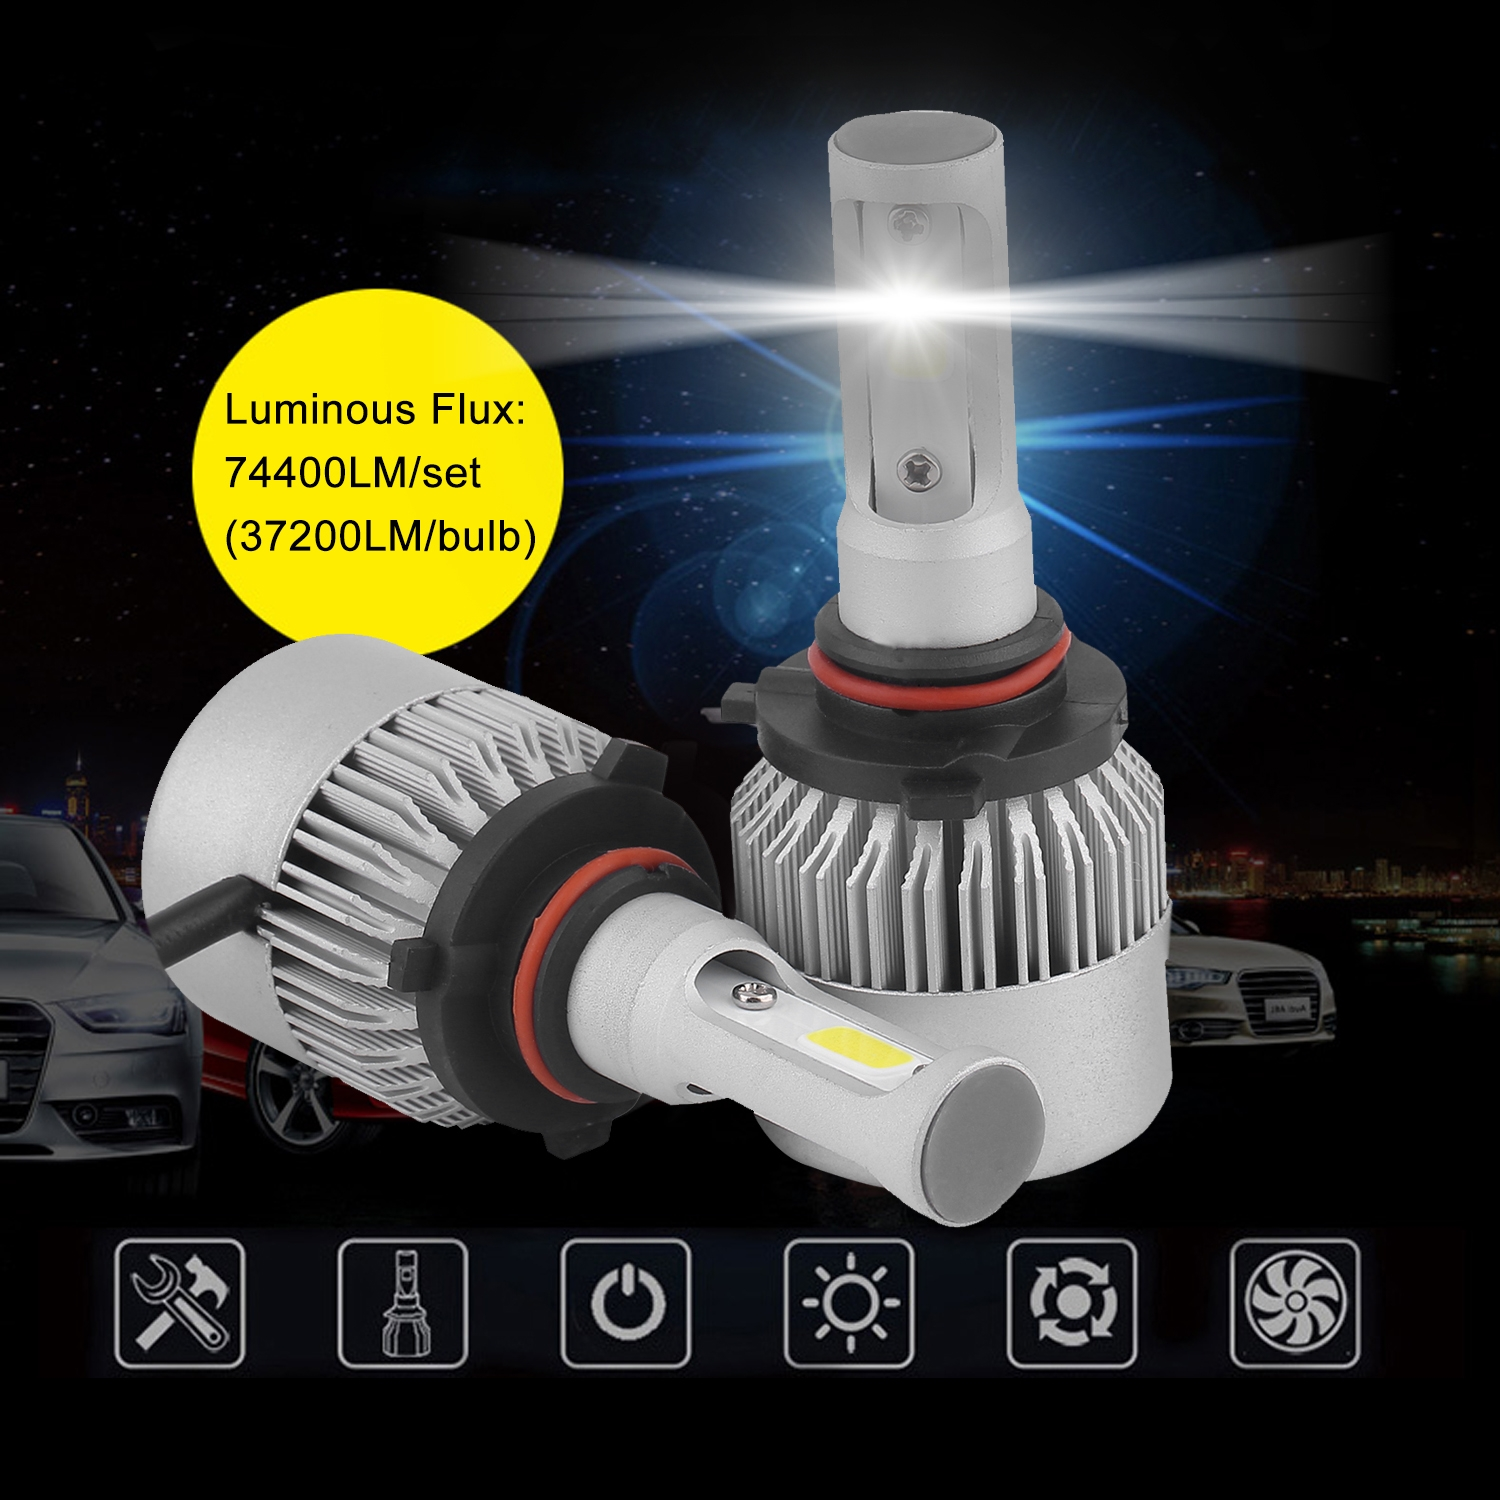 CNMODLE 9006 HB4 9012 LED Cars Headlights Lamp Rapid Cooling Light Bulbs Conversion Kit 620W 74400LM Auto Fog Lamp